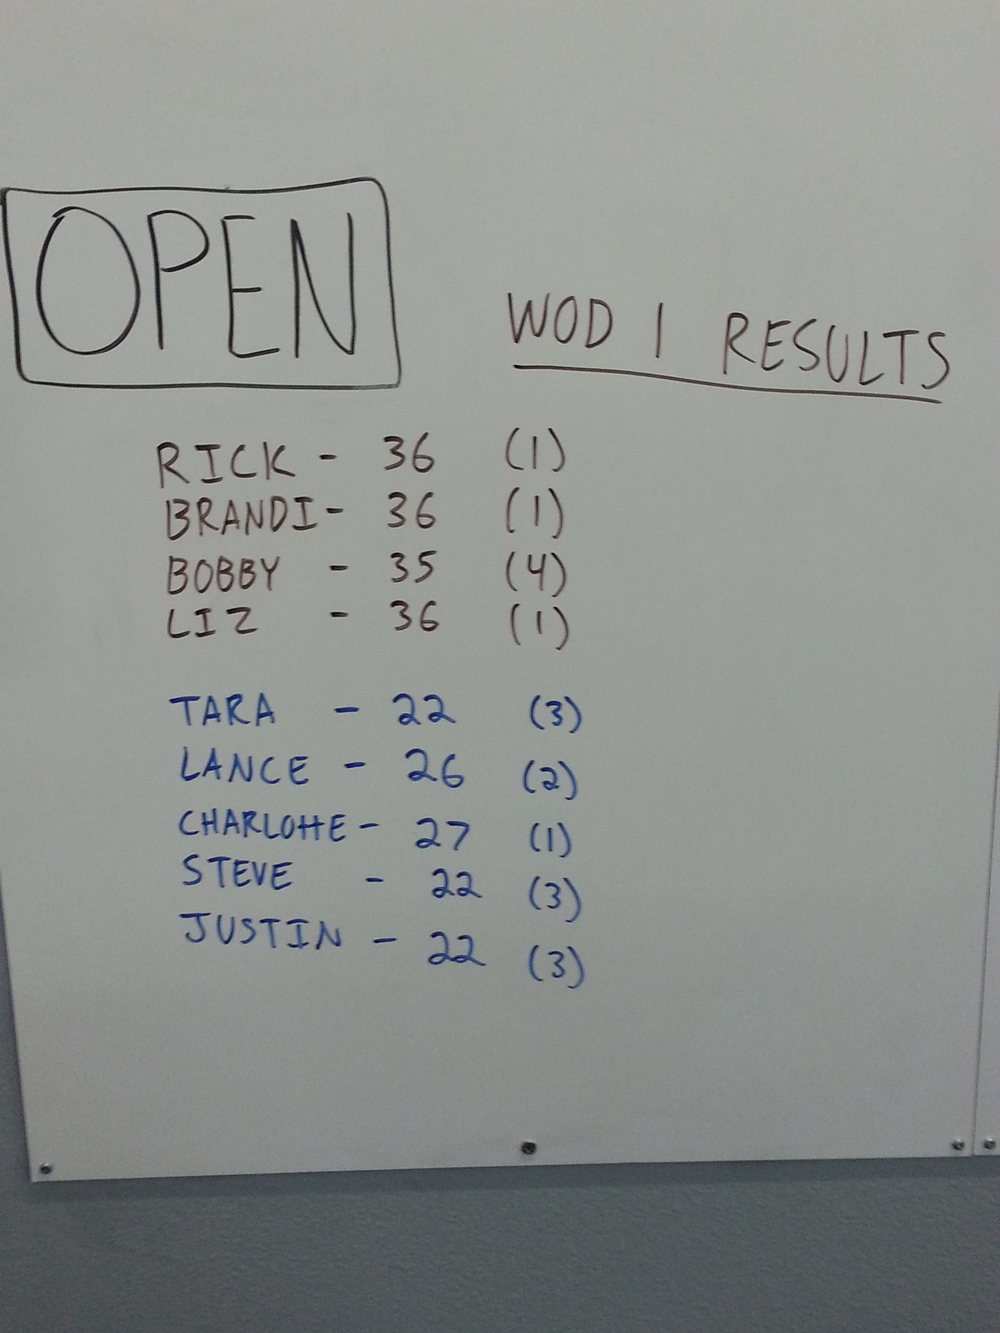 WOD 1 Results